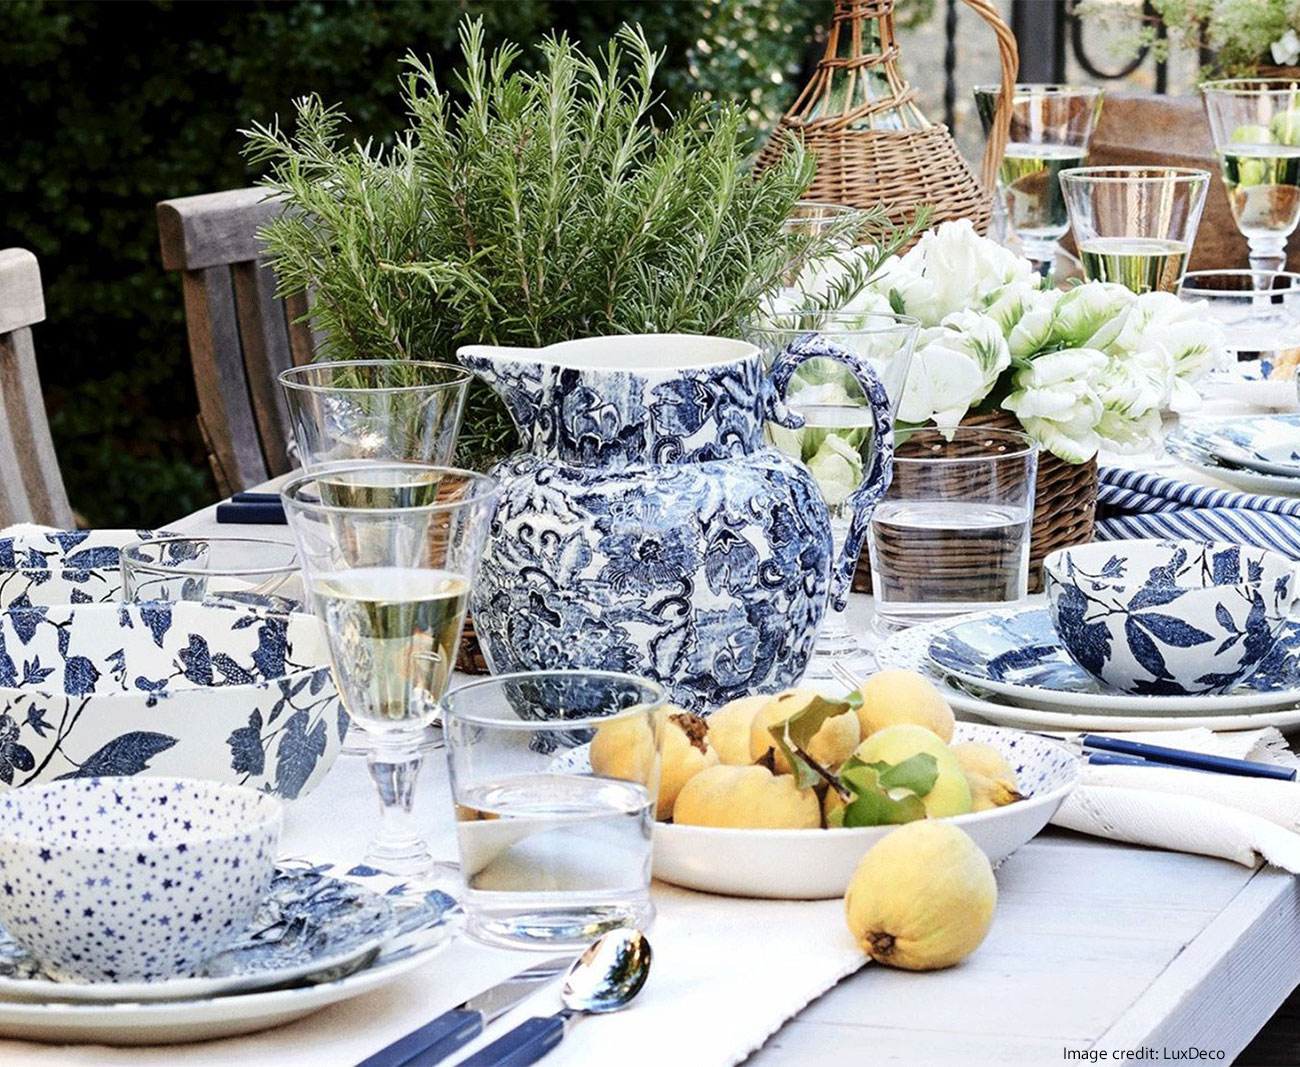 Behind_The_Brand_Ralph_Lauren_Luxury_Tableware_Shop_at_LuxDeco-2